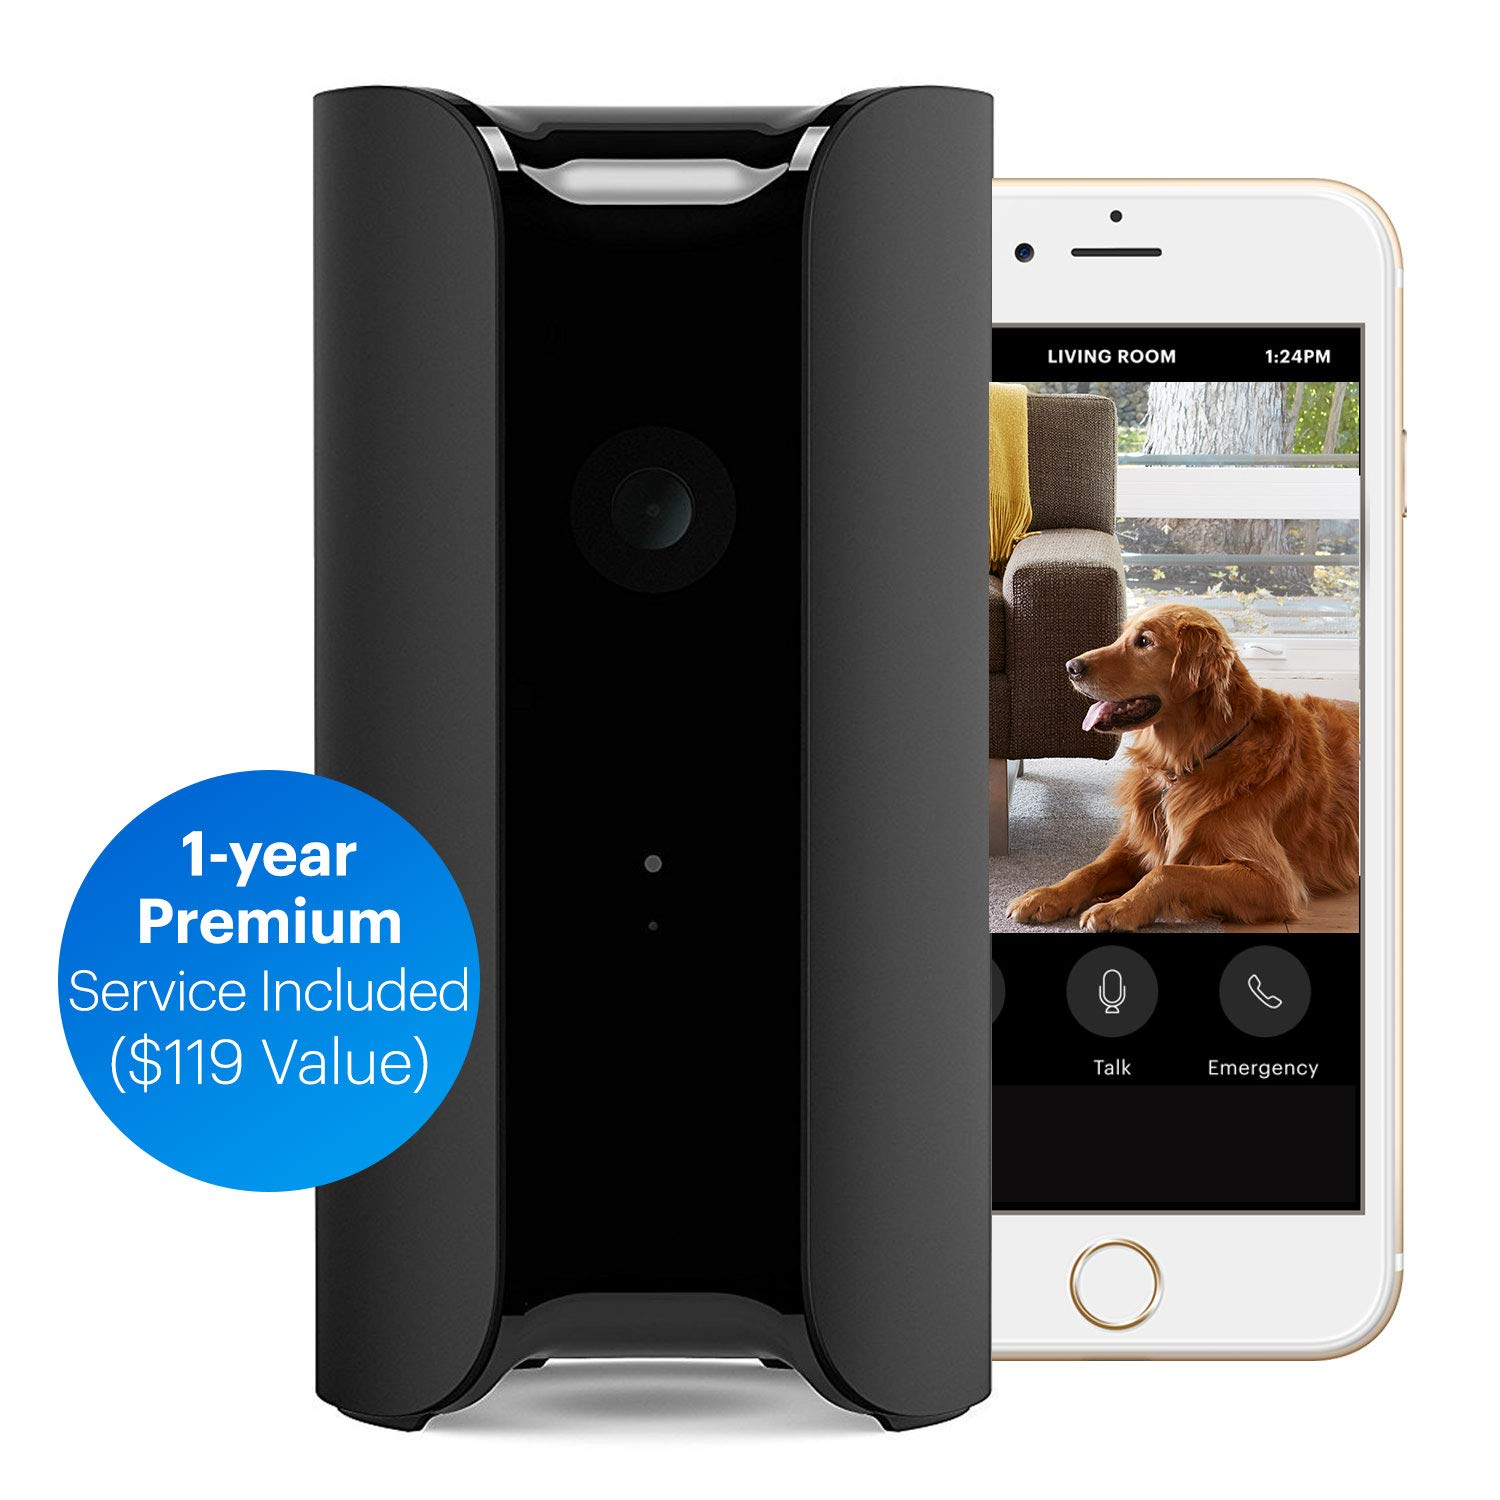 All-in-One WiFi Home Security Camera w/1-Year Premium Service Plan ($120 Value) Built in Siren, Climate Monitor, Motion & Person Sensor, Air Quality Alerts | Alexa - Insurance